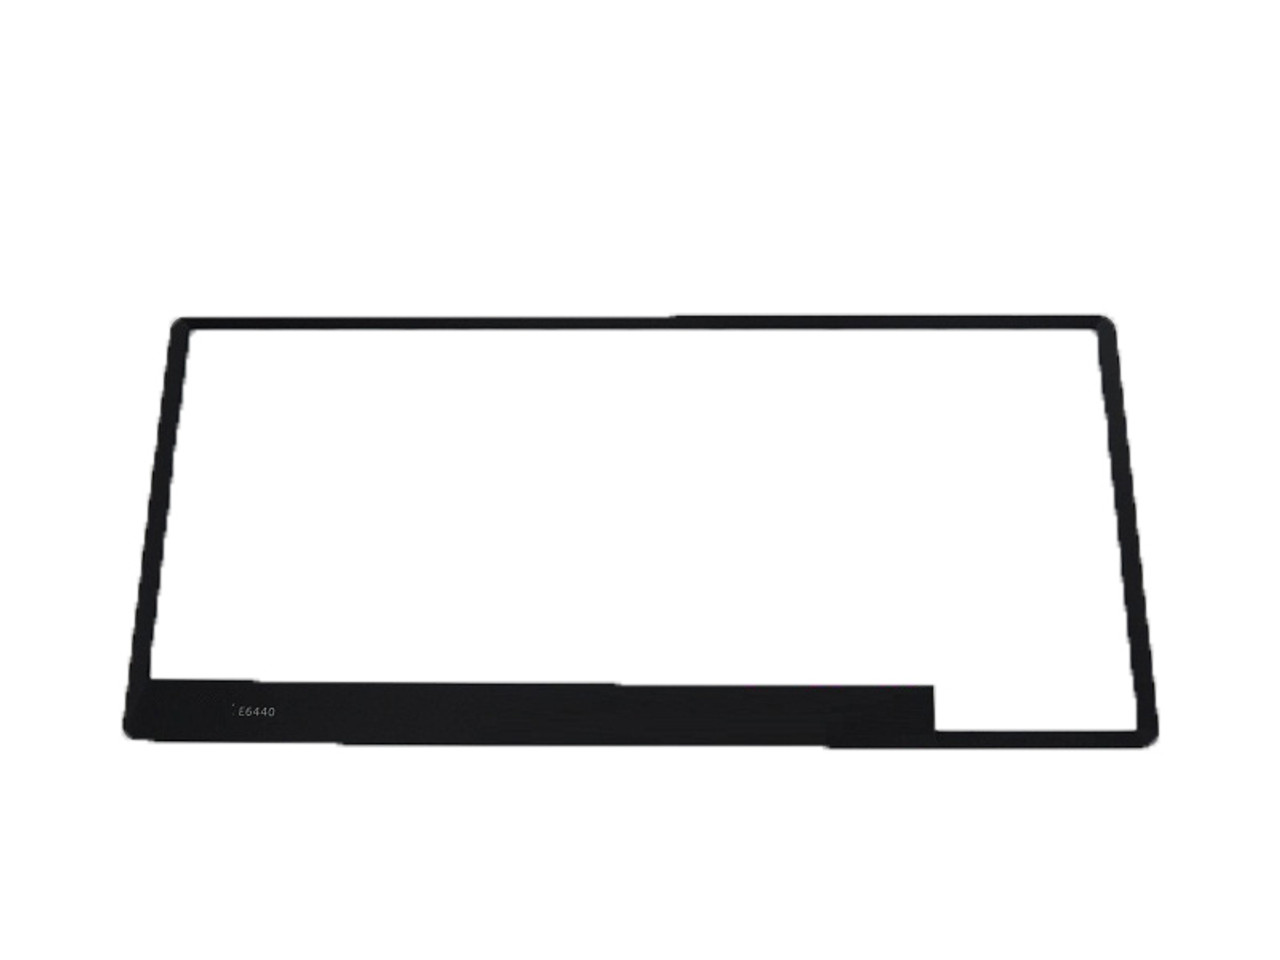 Laptop Hinge Cover Assembly for DELL Latitude E6440 P38G P38G Black EC0VG000400 0W3CM7 W3CM7 New and Original